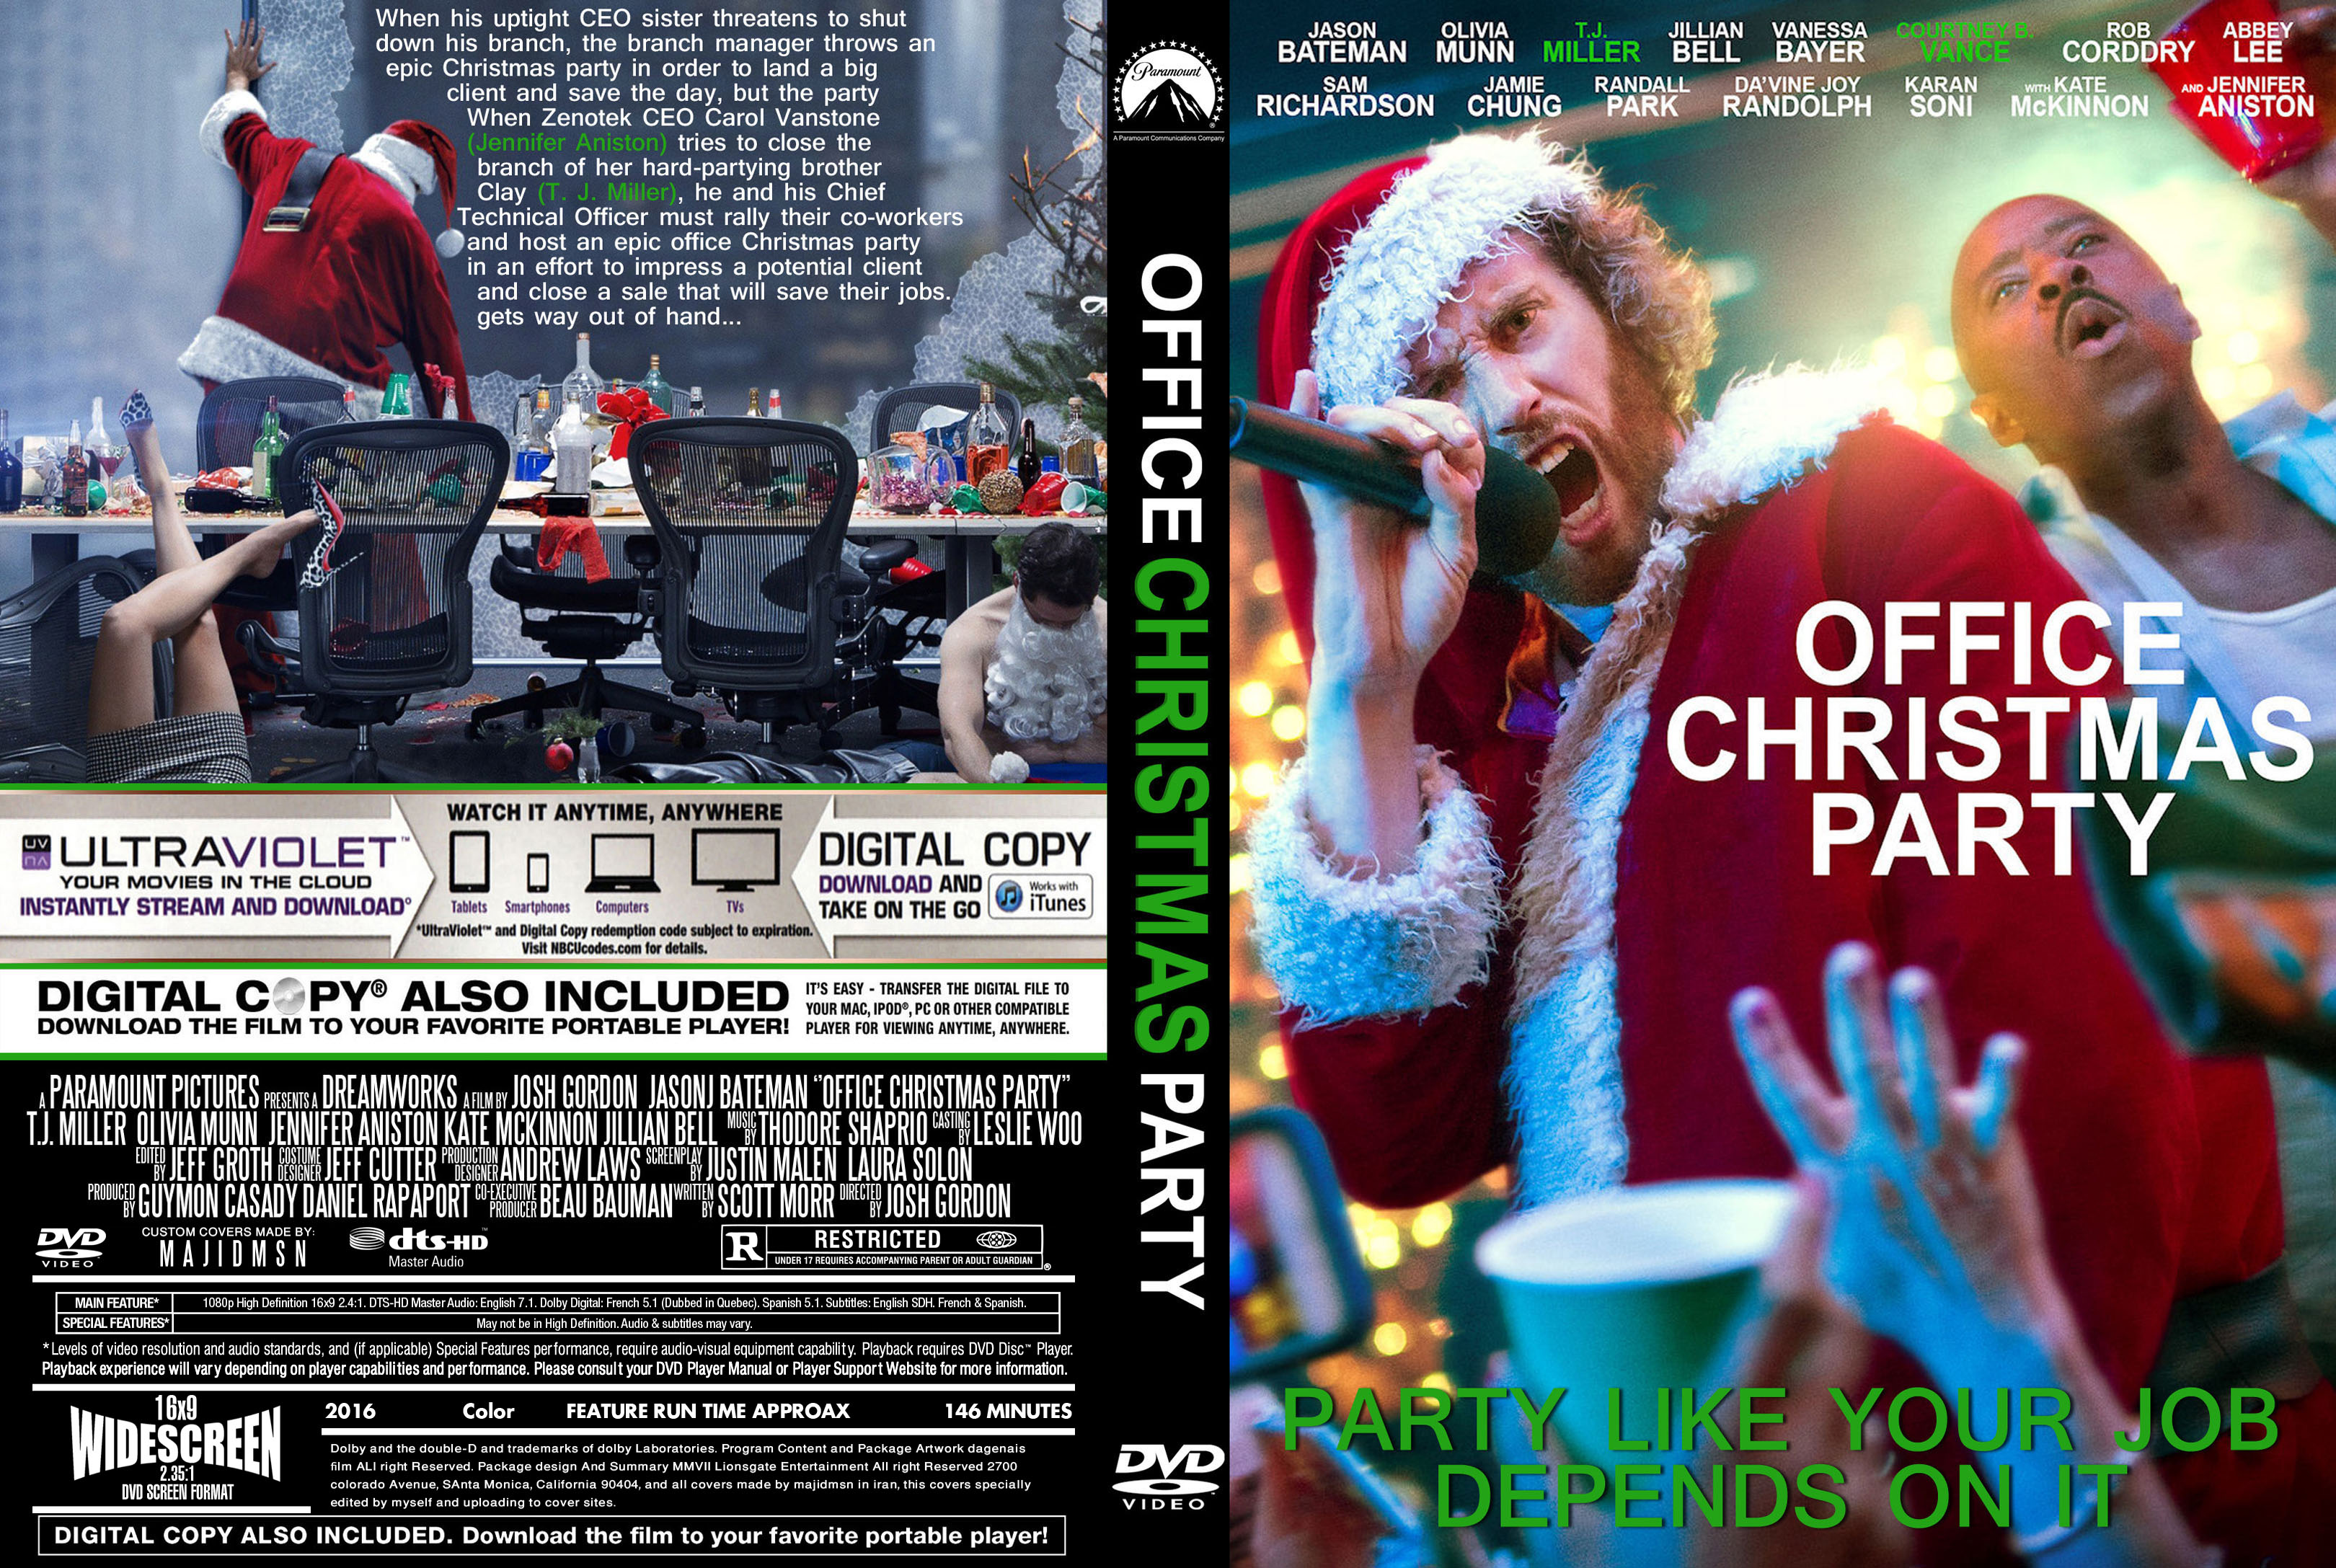 Office Christmas Party (2016) R0 Custom DVD Cover | Dvd Covers and ...